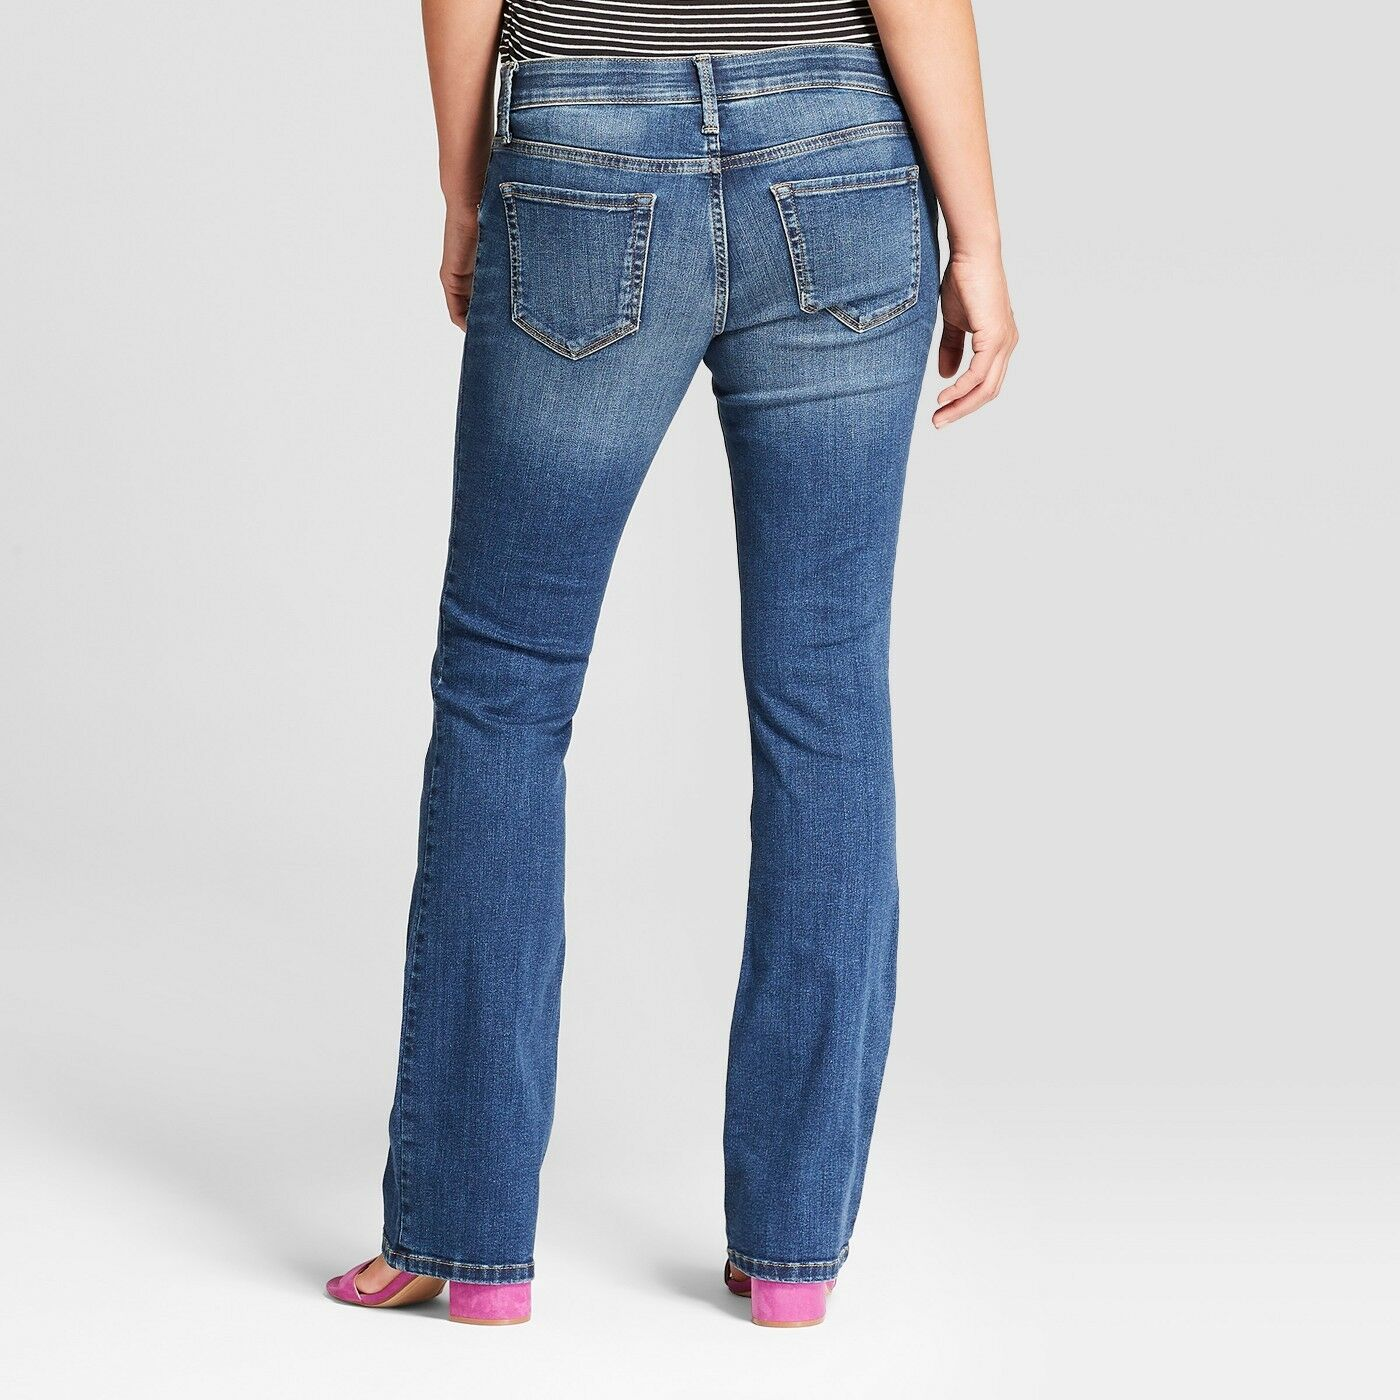 12b90dcbd5091 Maternity Inset Panel Bootcut Jeans - Isabel Maternity by Ingrid & Isabe  Dark